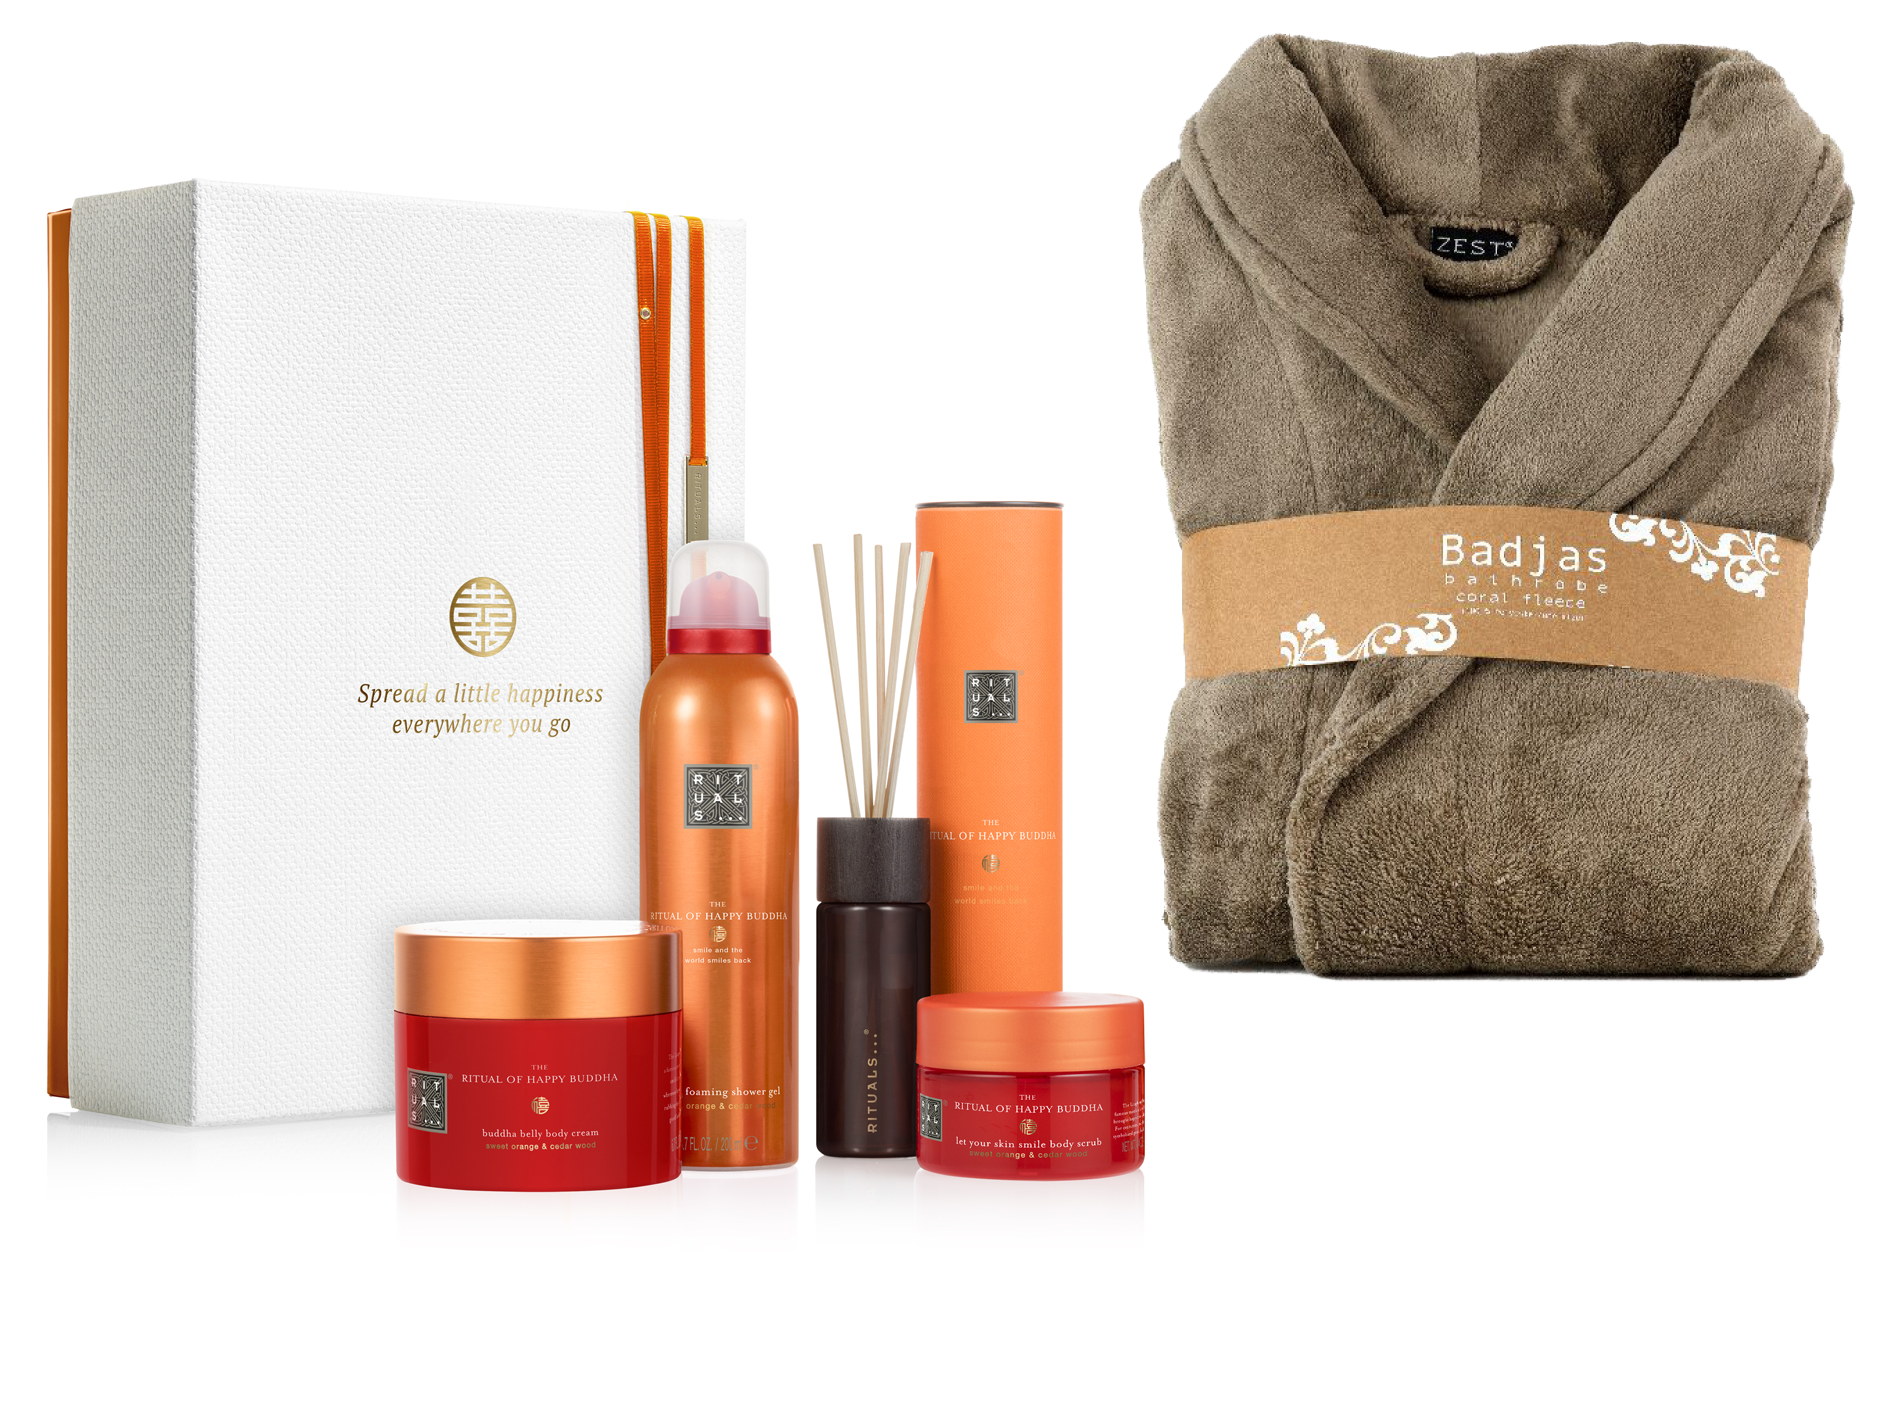 Rituals Happy Buddha Collection met badjas taupe